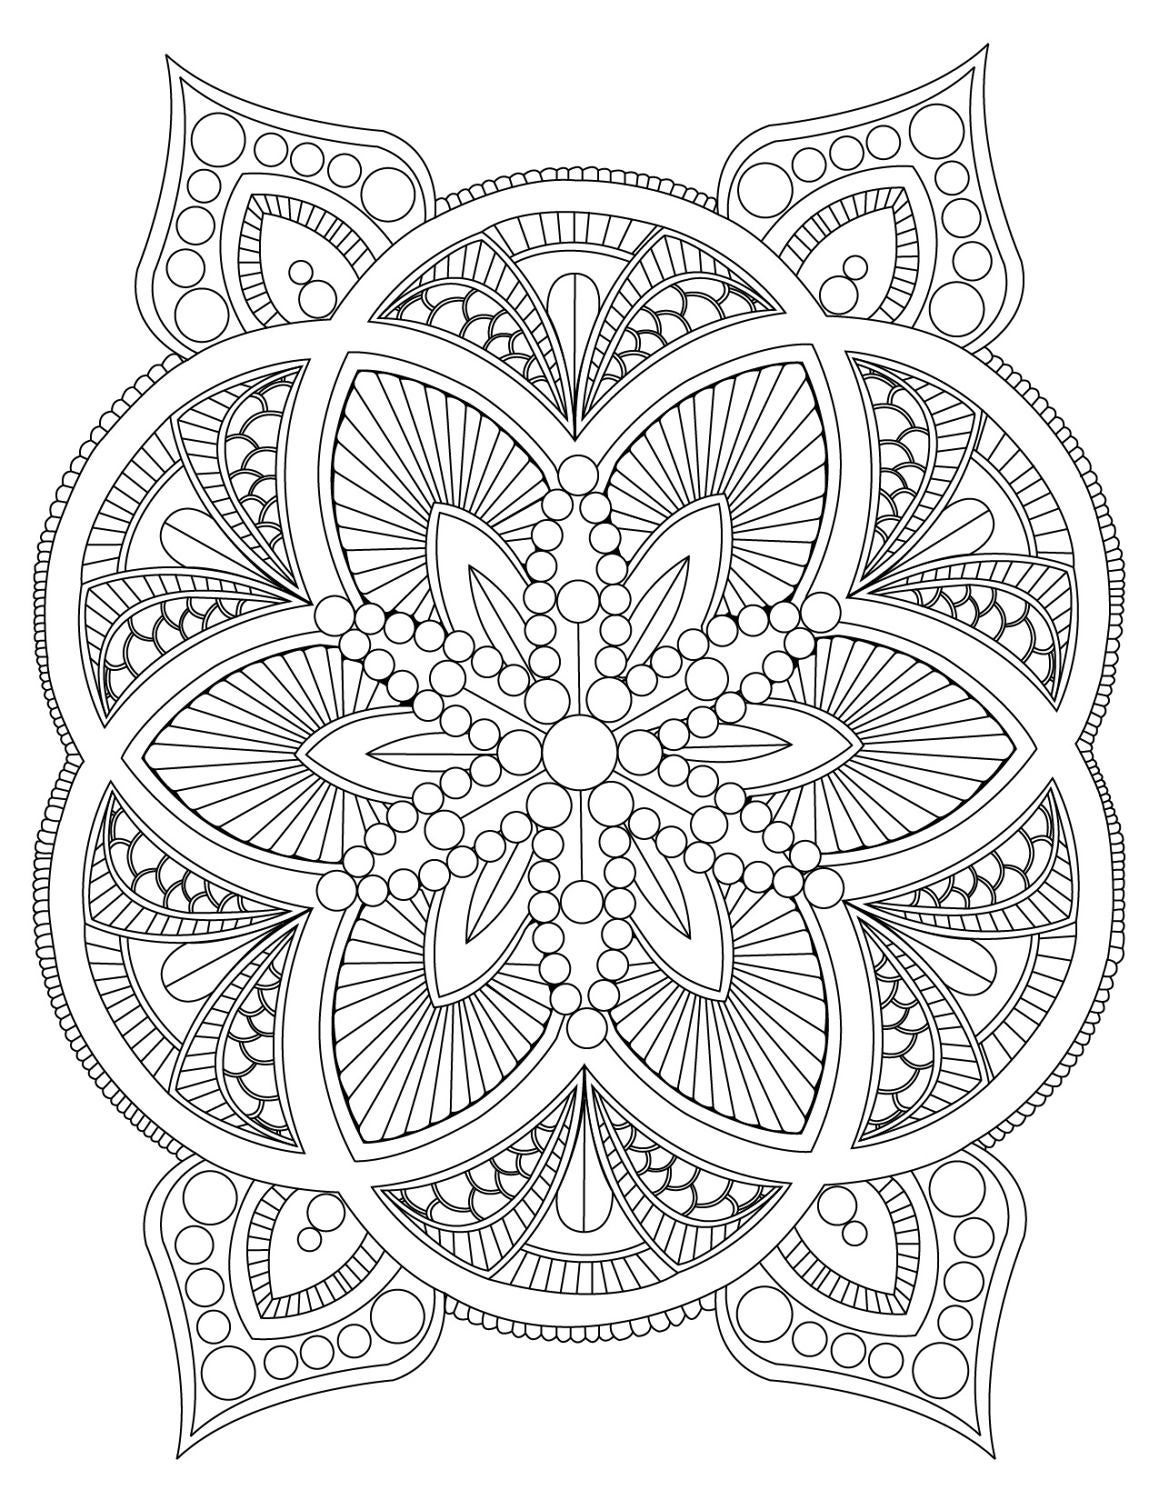 free printable mandalas to color for adults free printable mandala coloring pages for adults adults printable free for color to mandalas